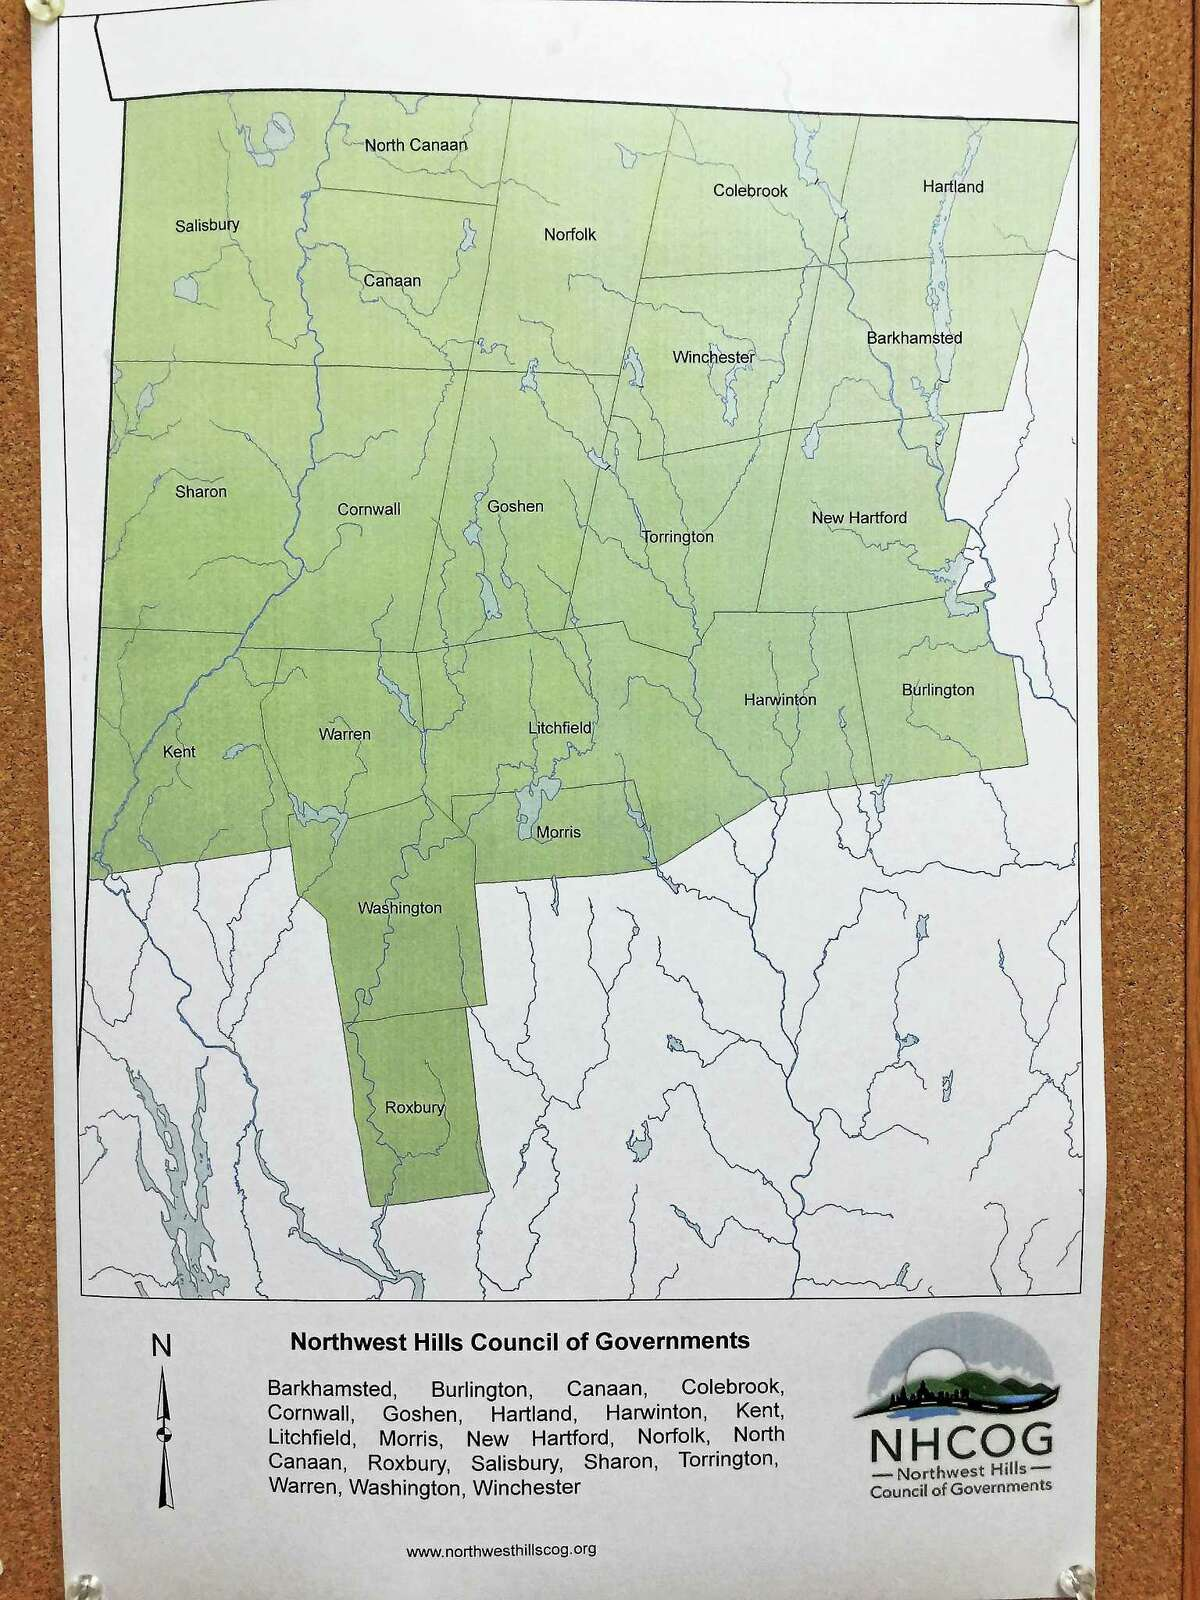 A map showing the towns represented in the Northwest Hills Council of Governments.